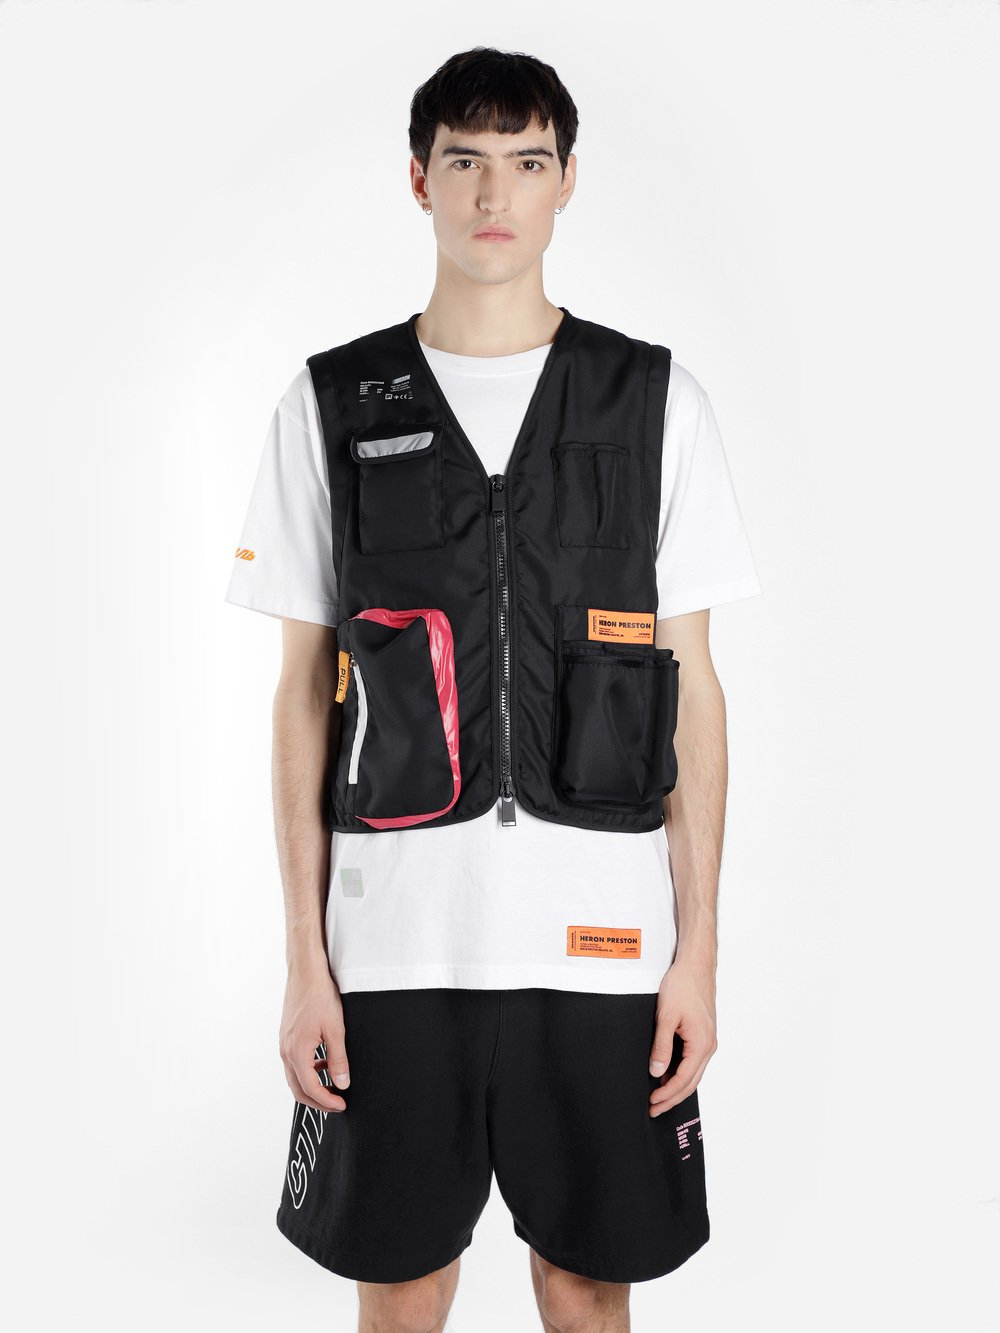 0445be1e5177 Heron Preston - Antonioli.eu